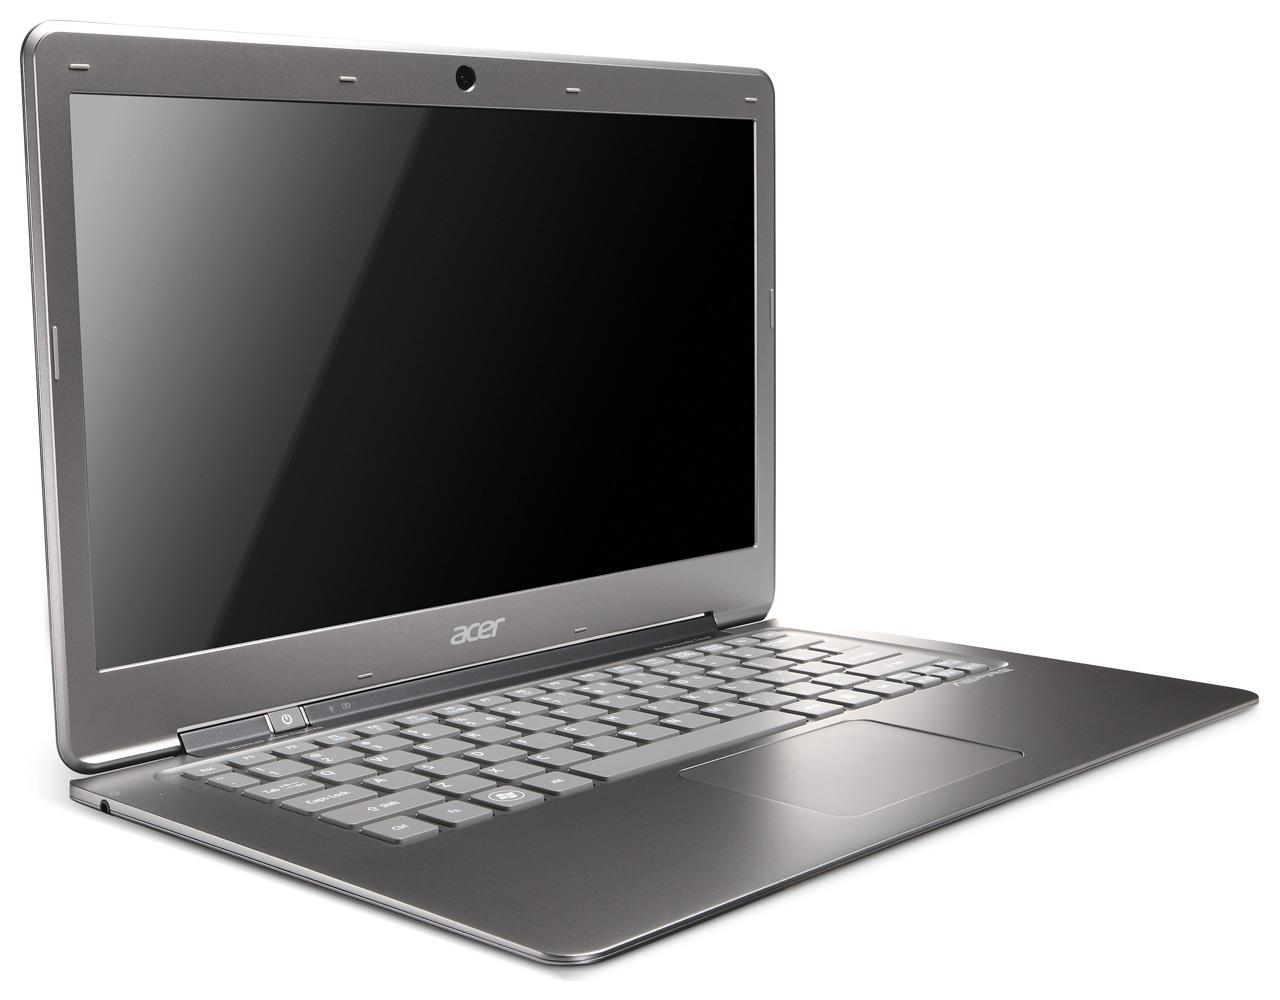 ACER ASPIRE S3 951 ULTRABOOK Photos Images and Wallpapers 1280x1000